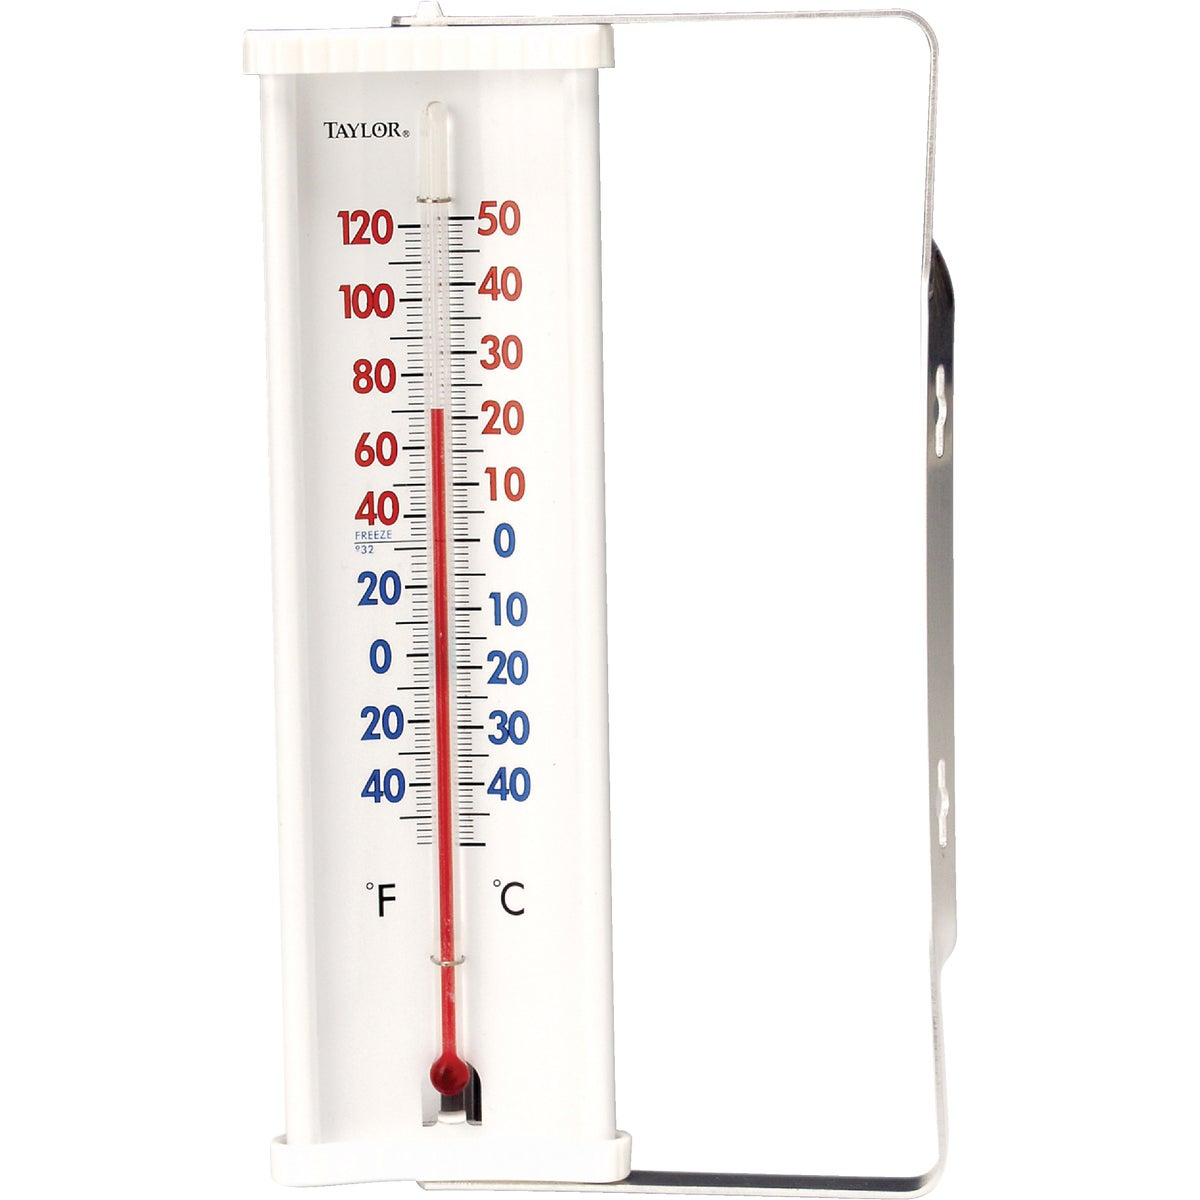 WINDOW THERMOMETER - 5316N by Taylor Precision